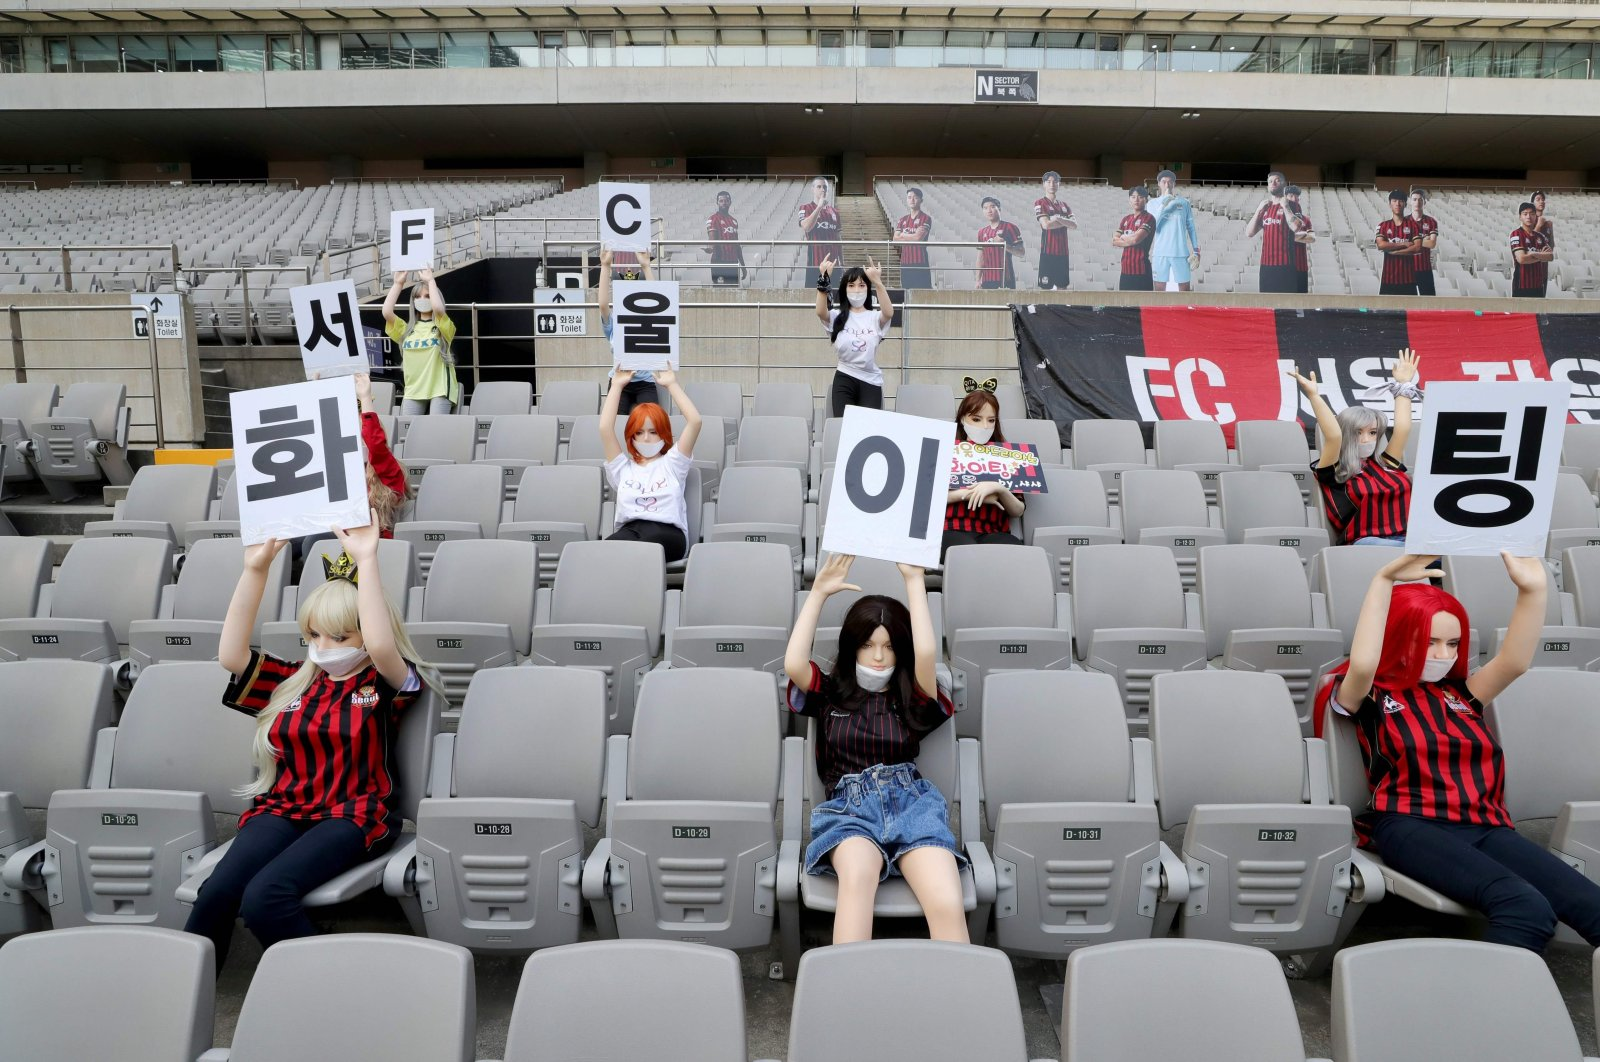 Mannequins are displayed at a FC Seoul football match in Seoul, South Korea, May 17, 2020. (AFP Photo)